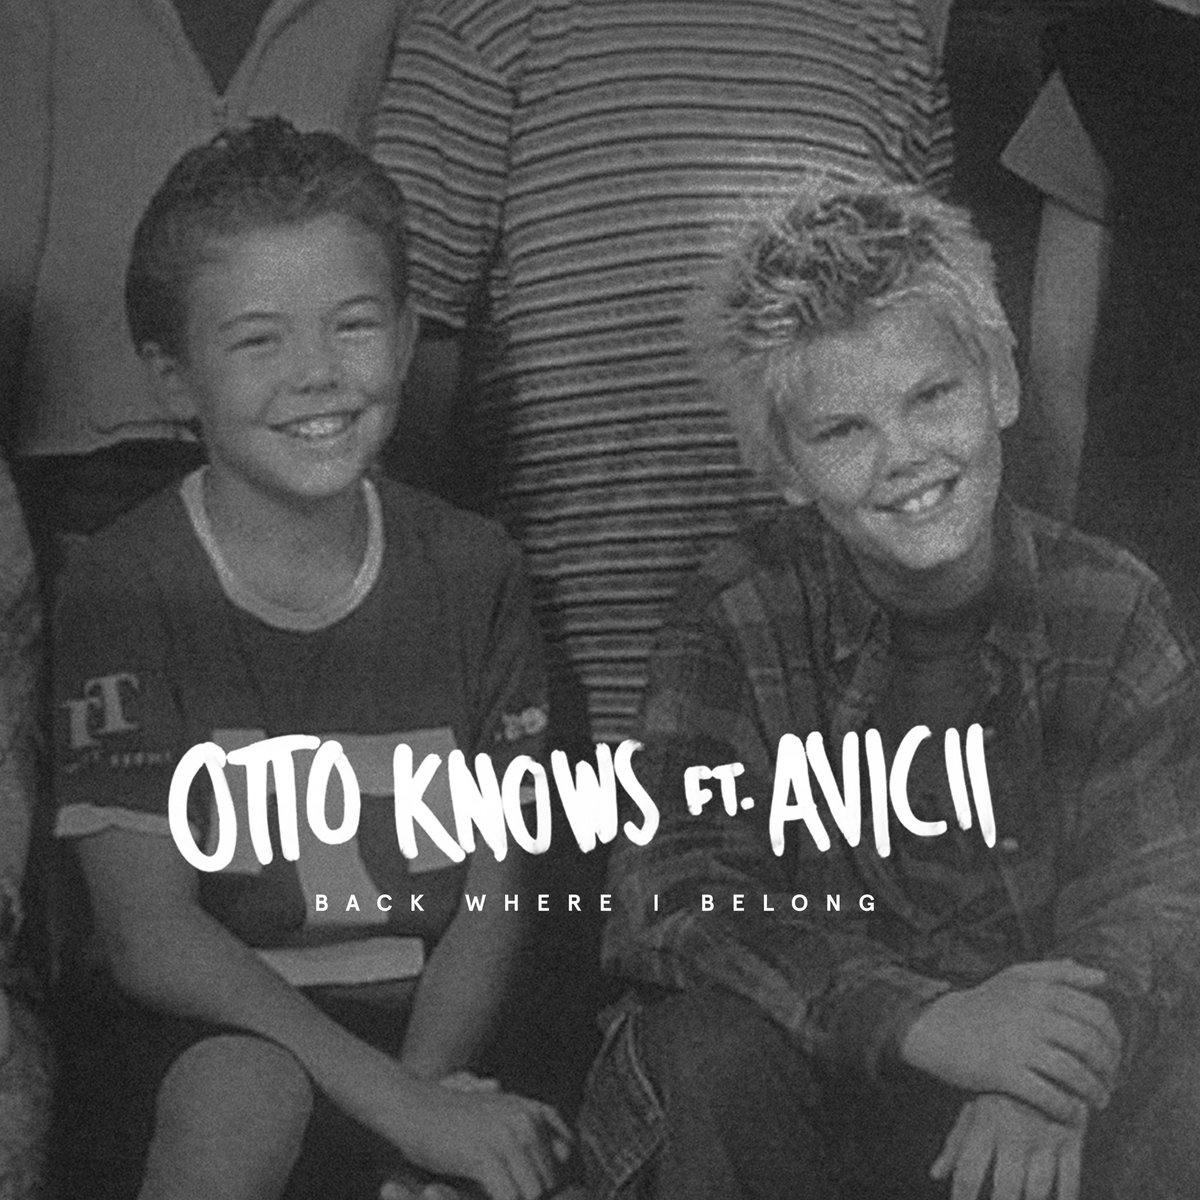 New song I made with @Avicii out on Friday! #BWIB https://t.co/NnjFM6Otwv